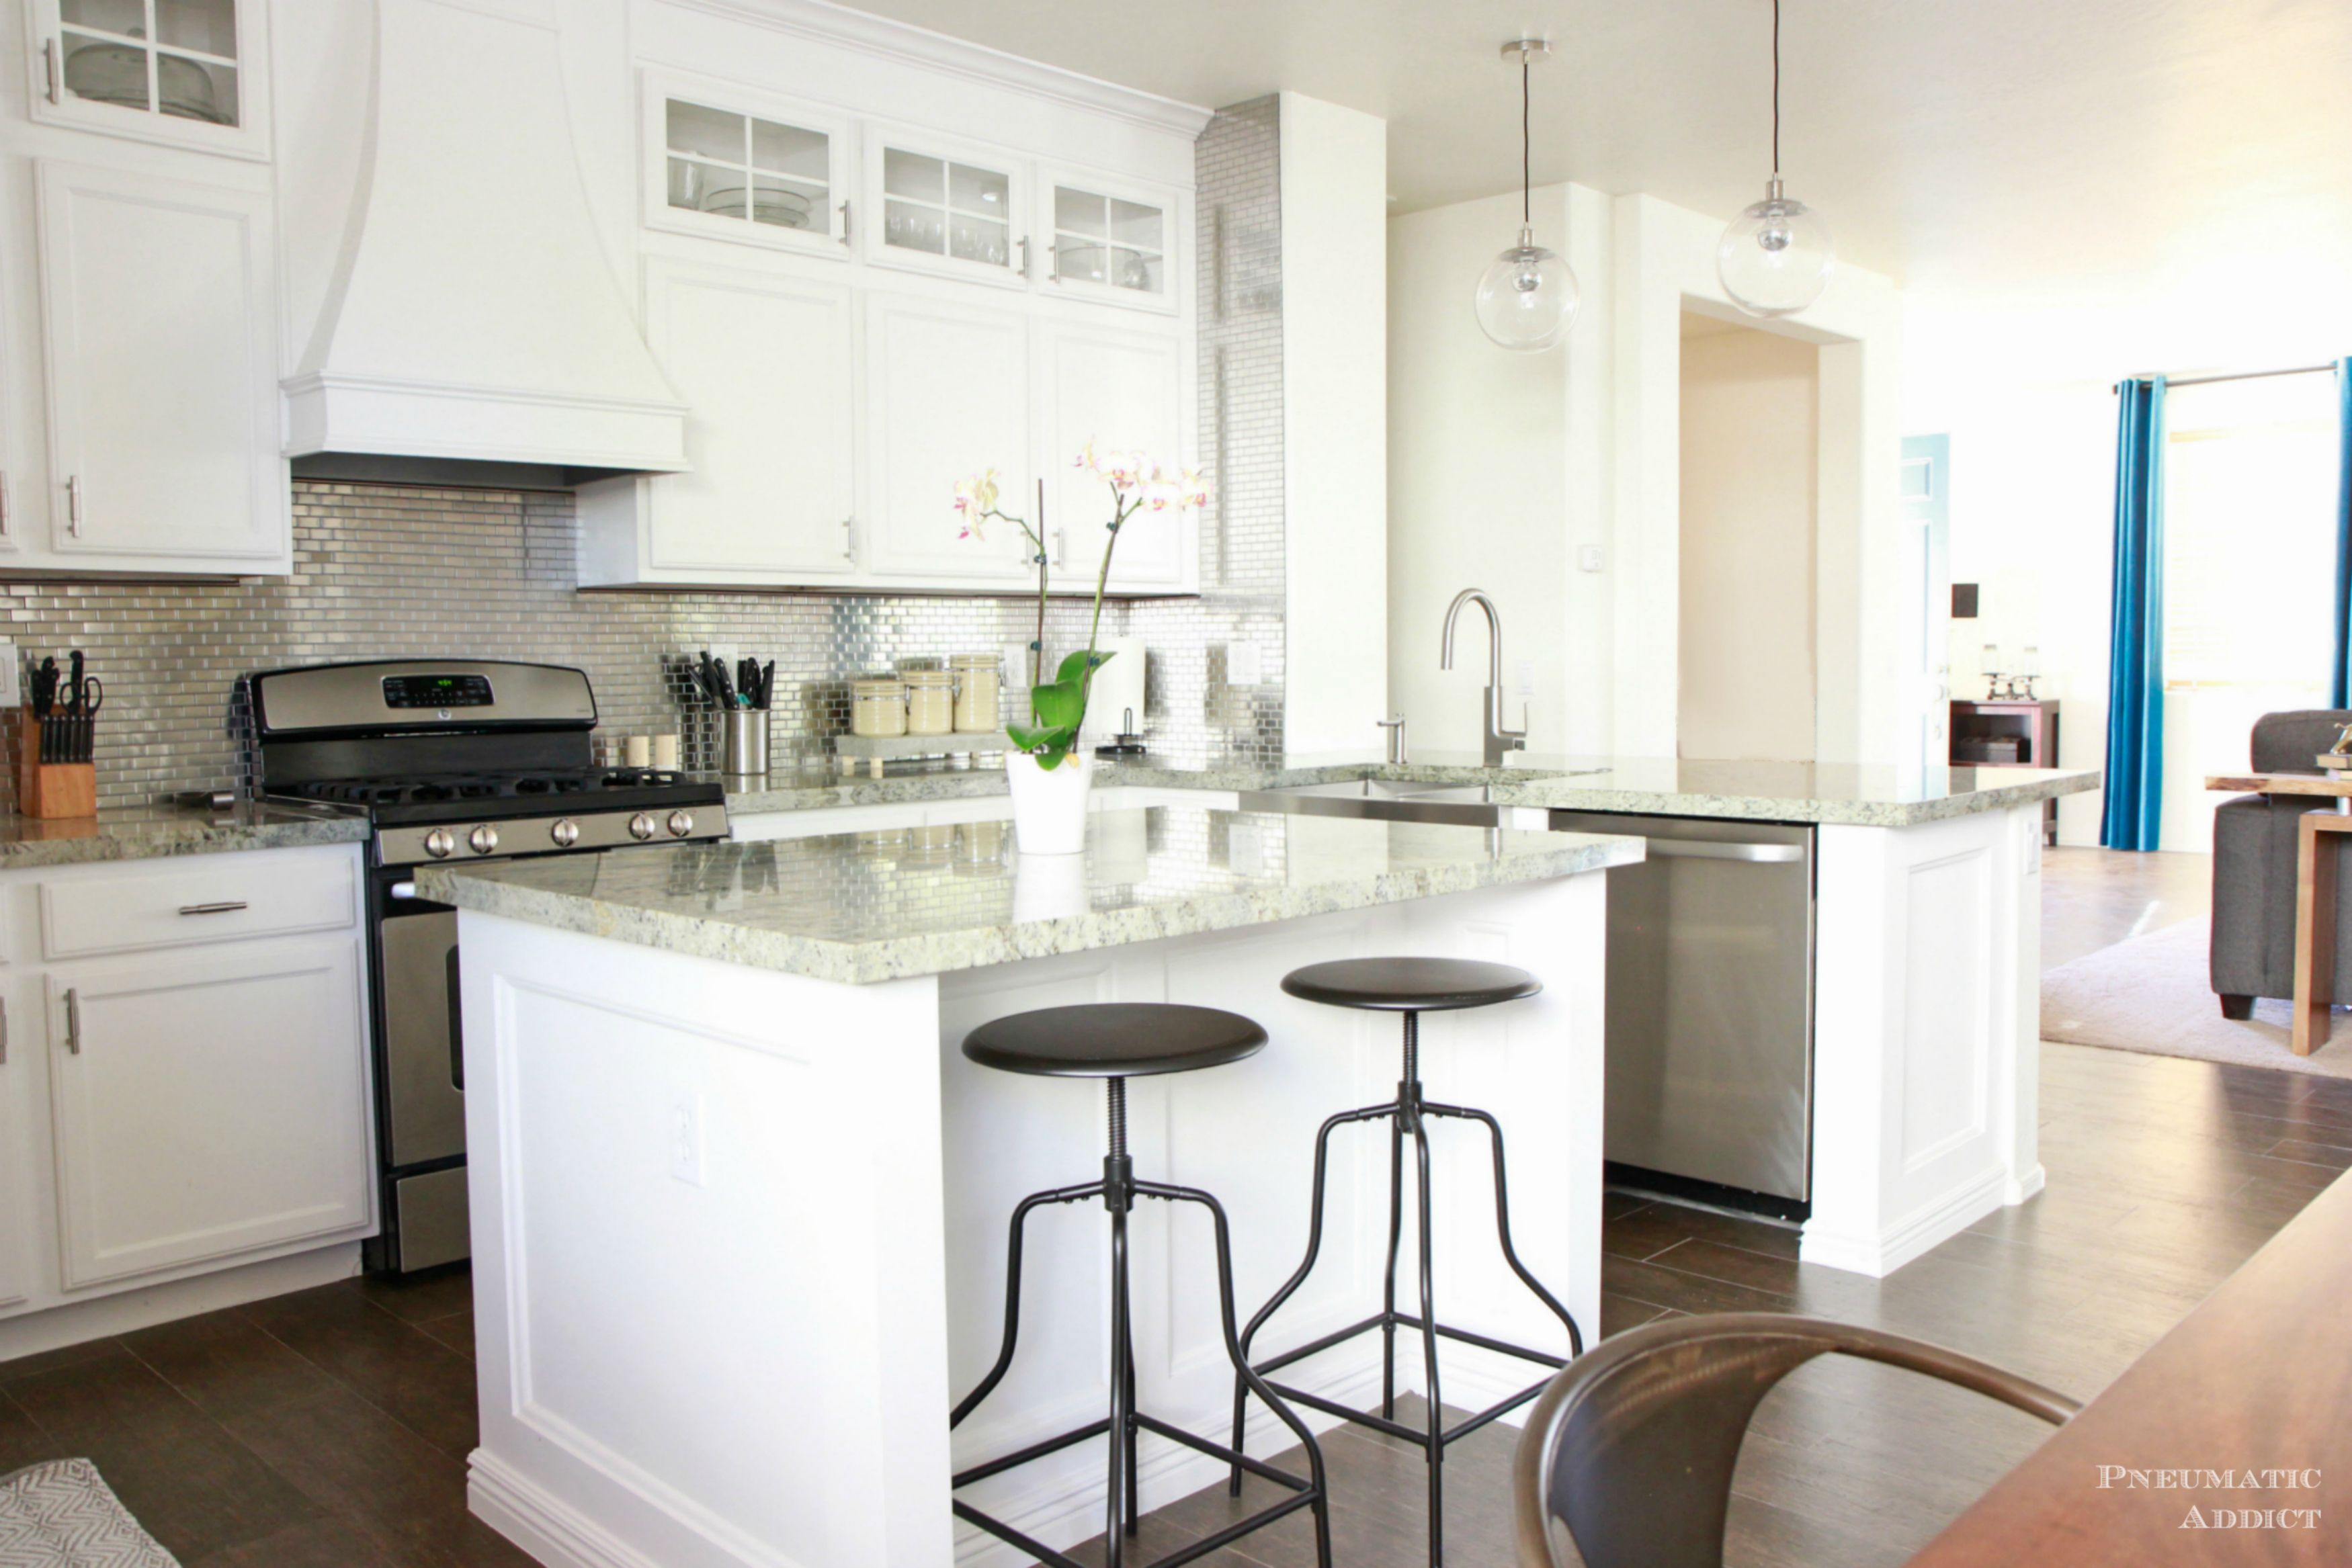 exceptional Images Of White Cabinets In Kitchen #3: Elle Decor